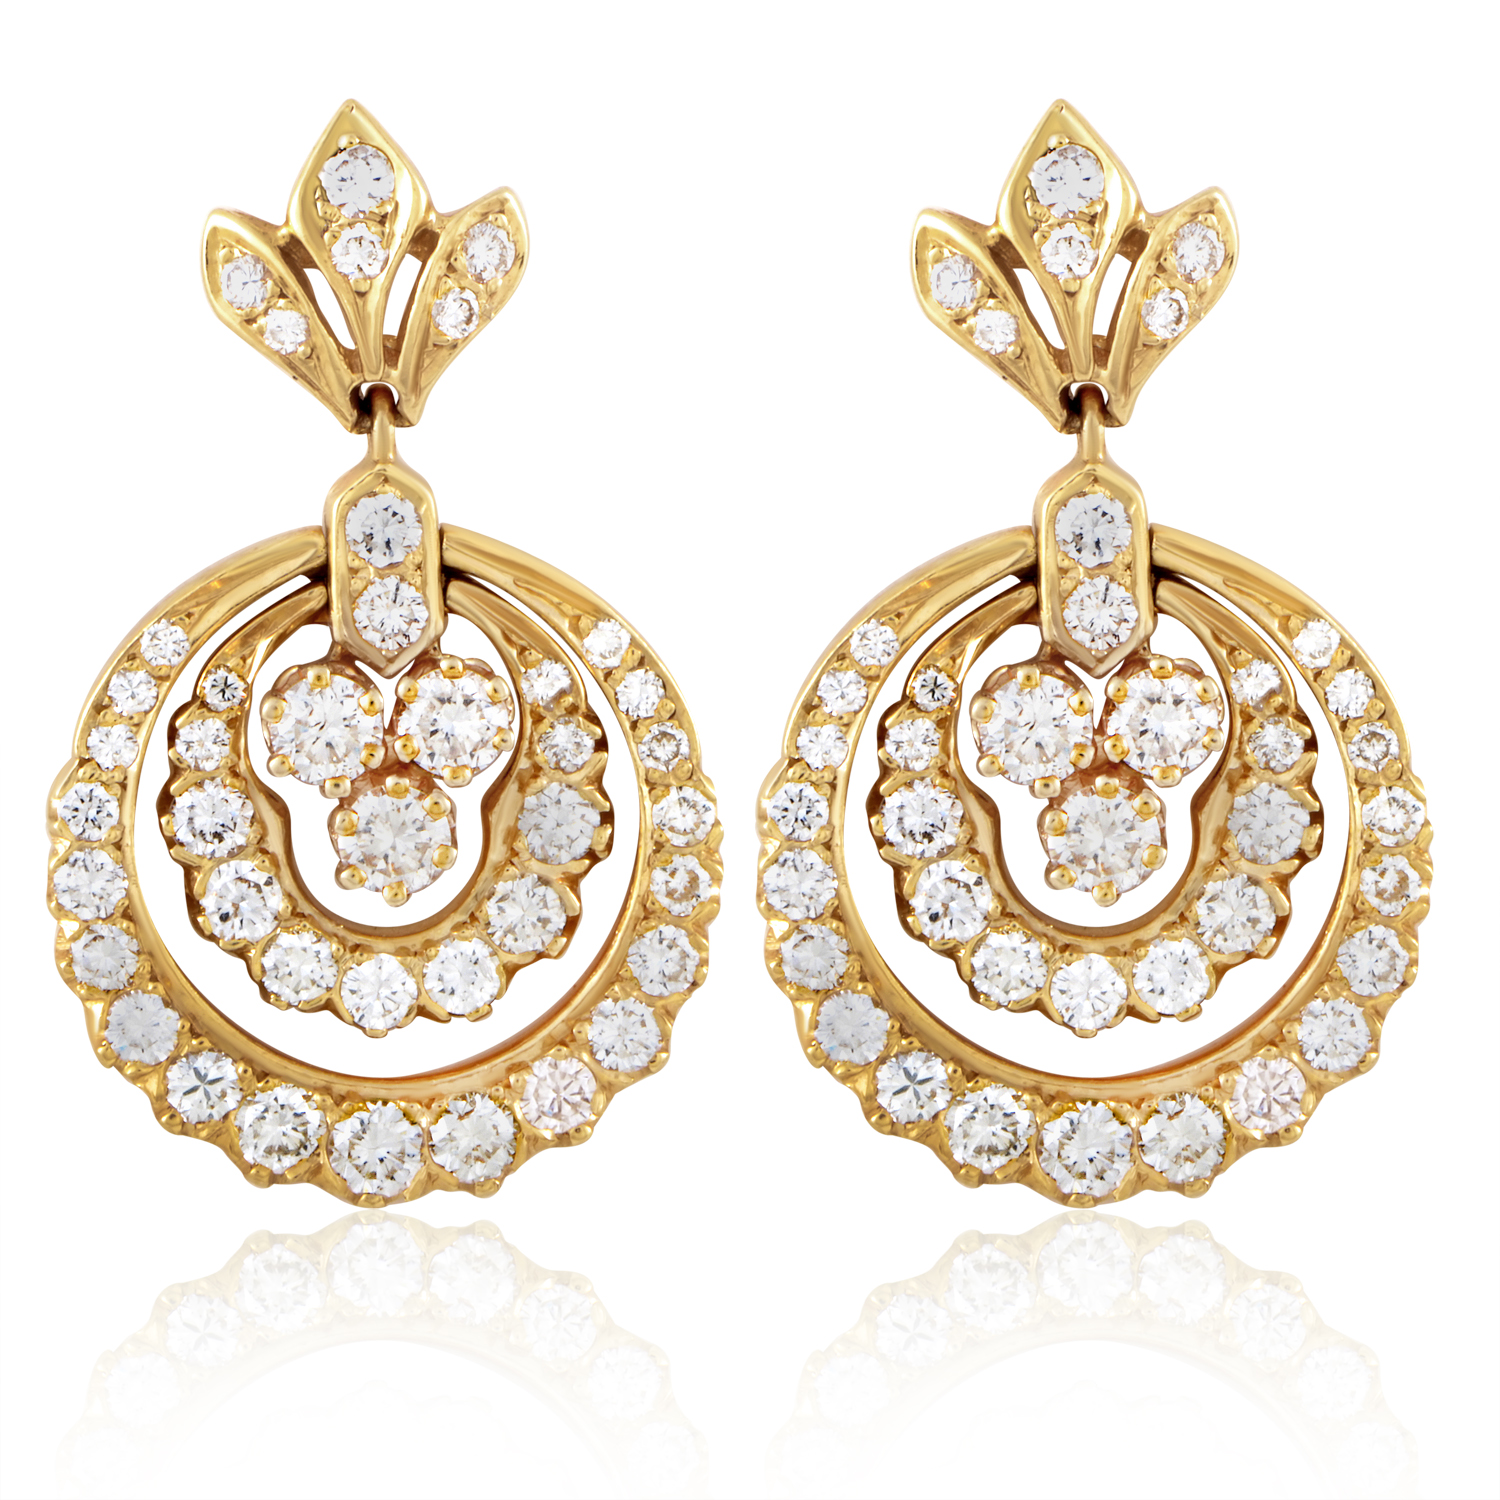 18K Yellow Gold Diamond Dangle Earrings ST-14-021016